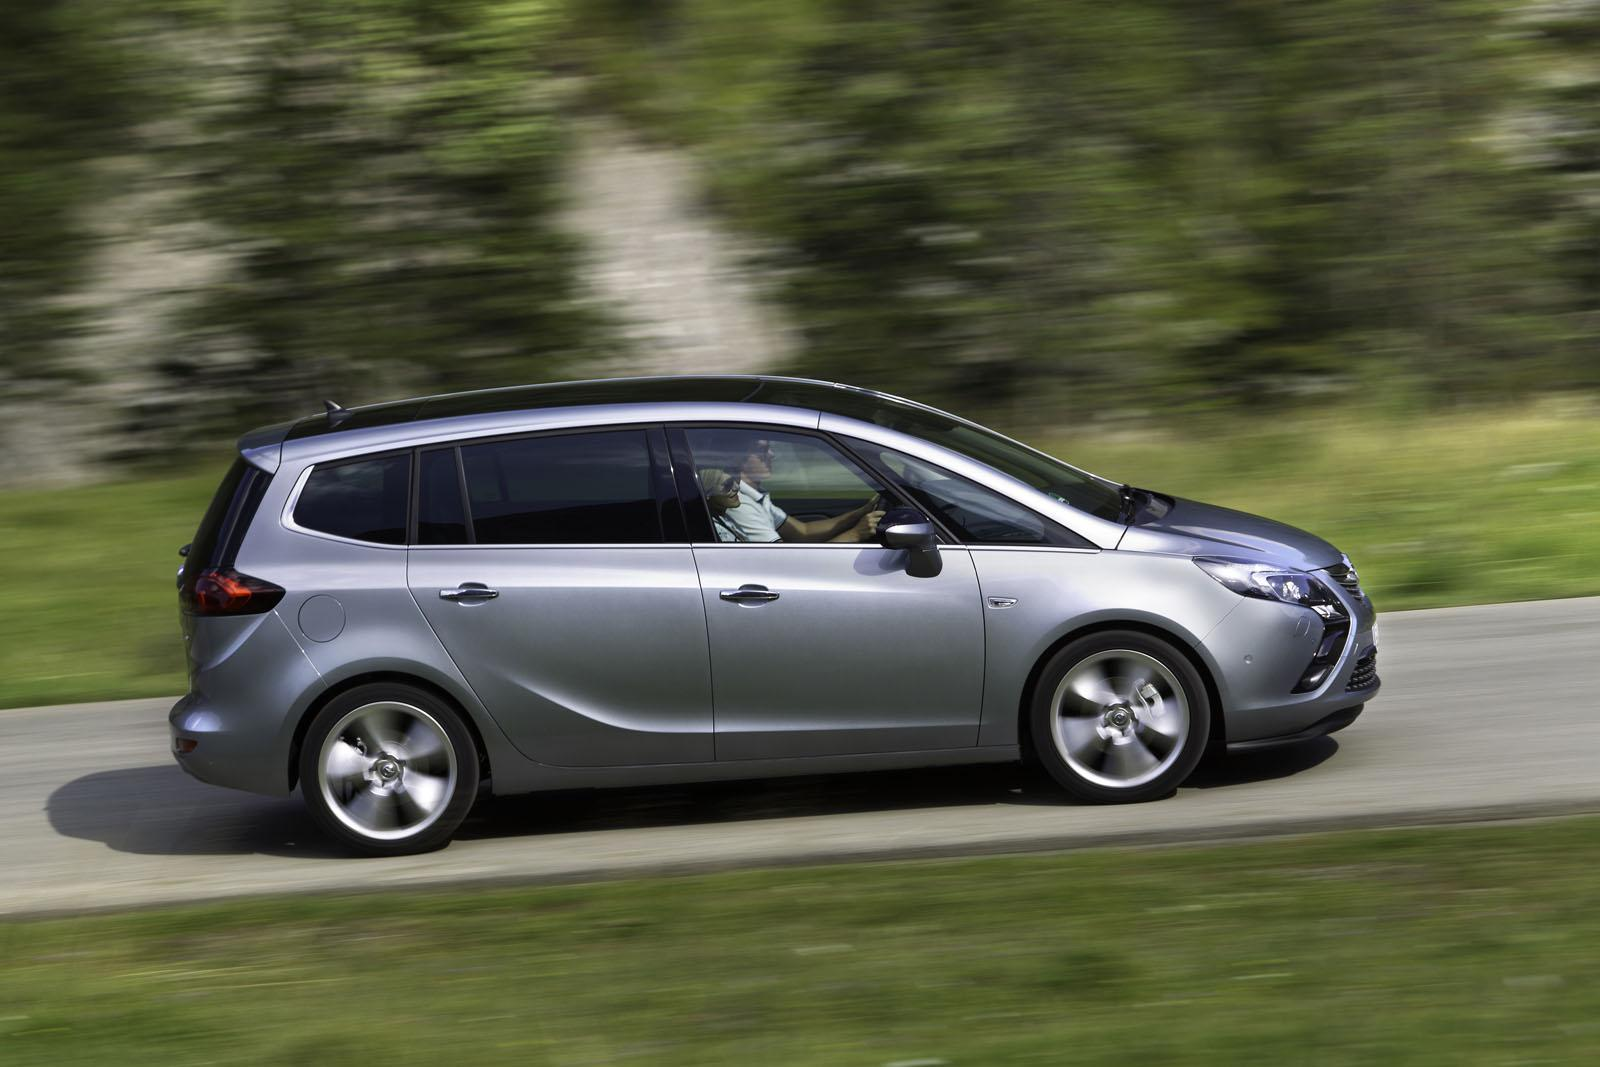 opel zafira tourer gets 200 hp 1 6 sidi turbo engine autoevolution. Black Bedroom Furniture Sets. Home Design Ideas